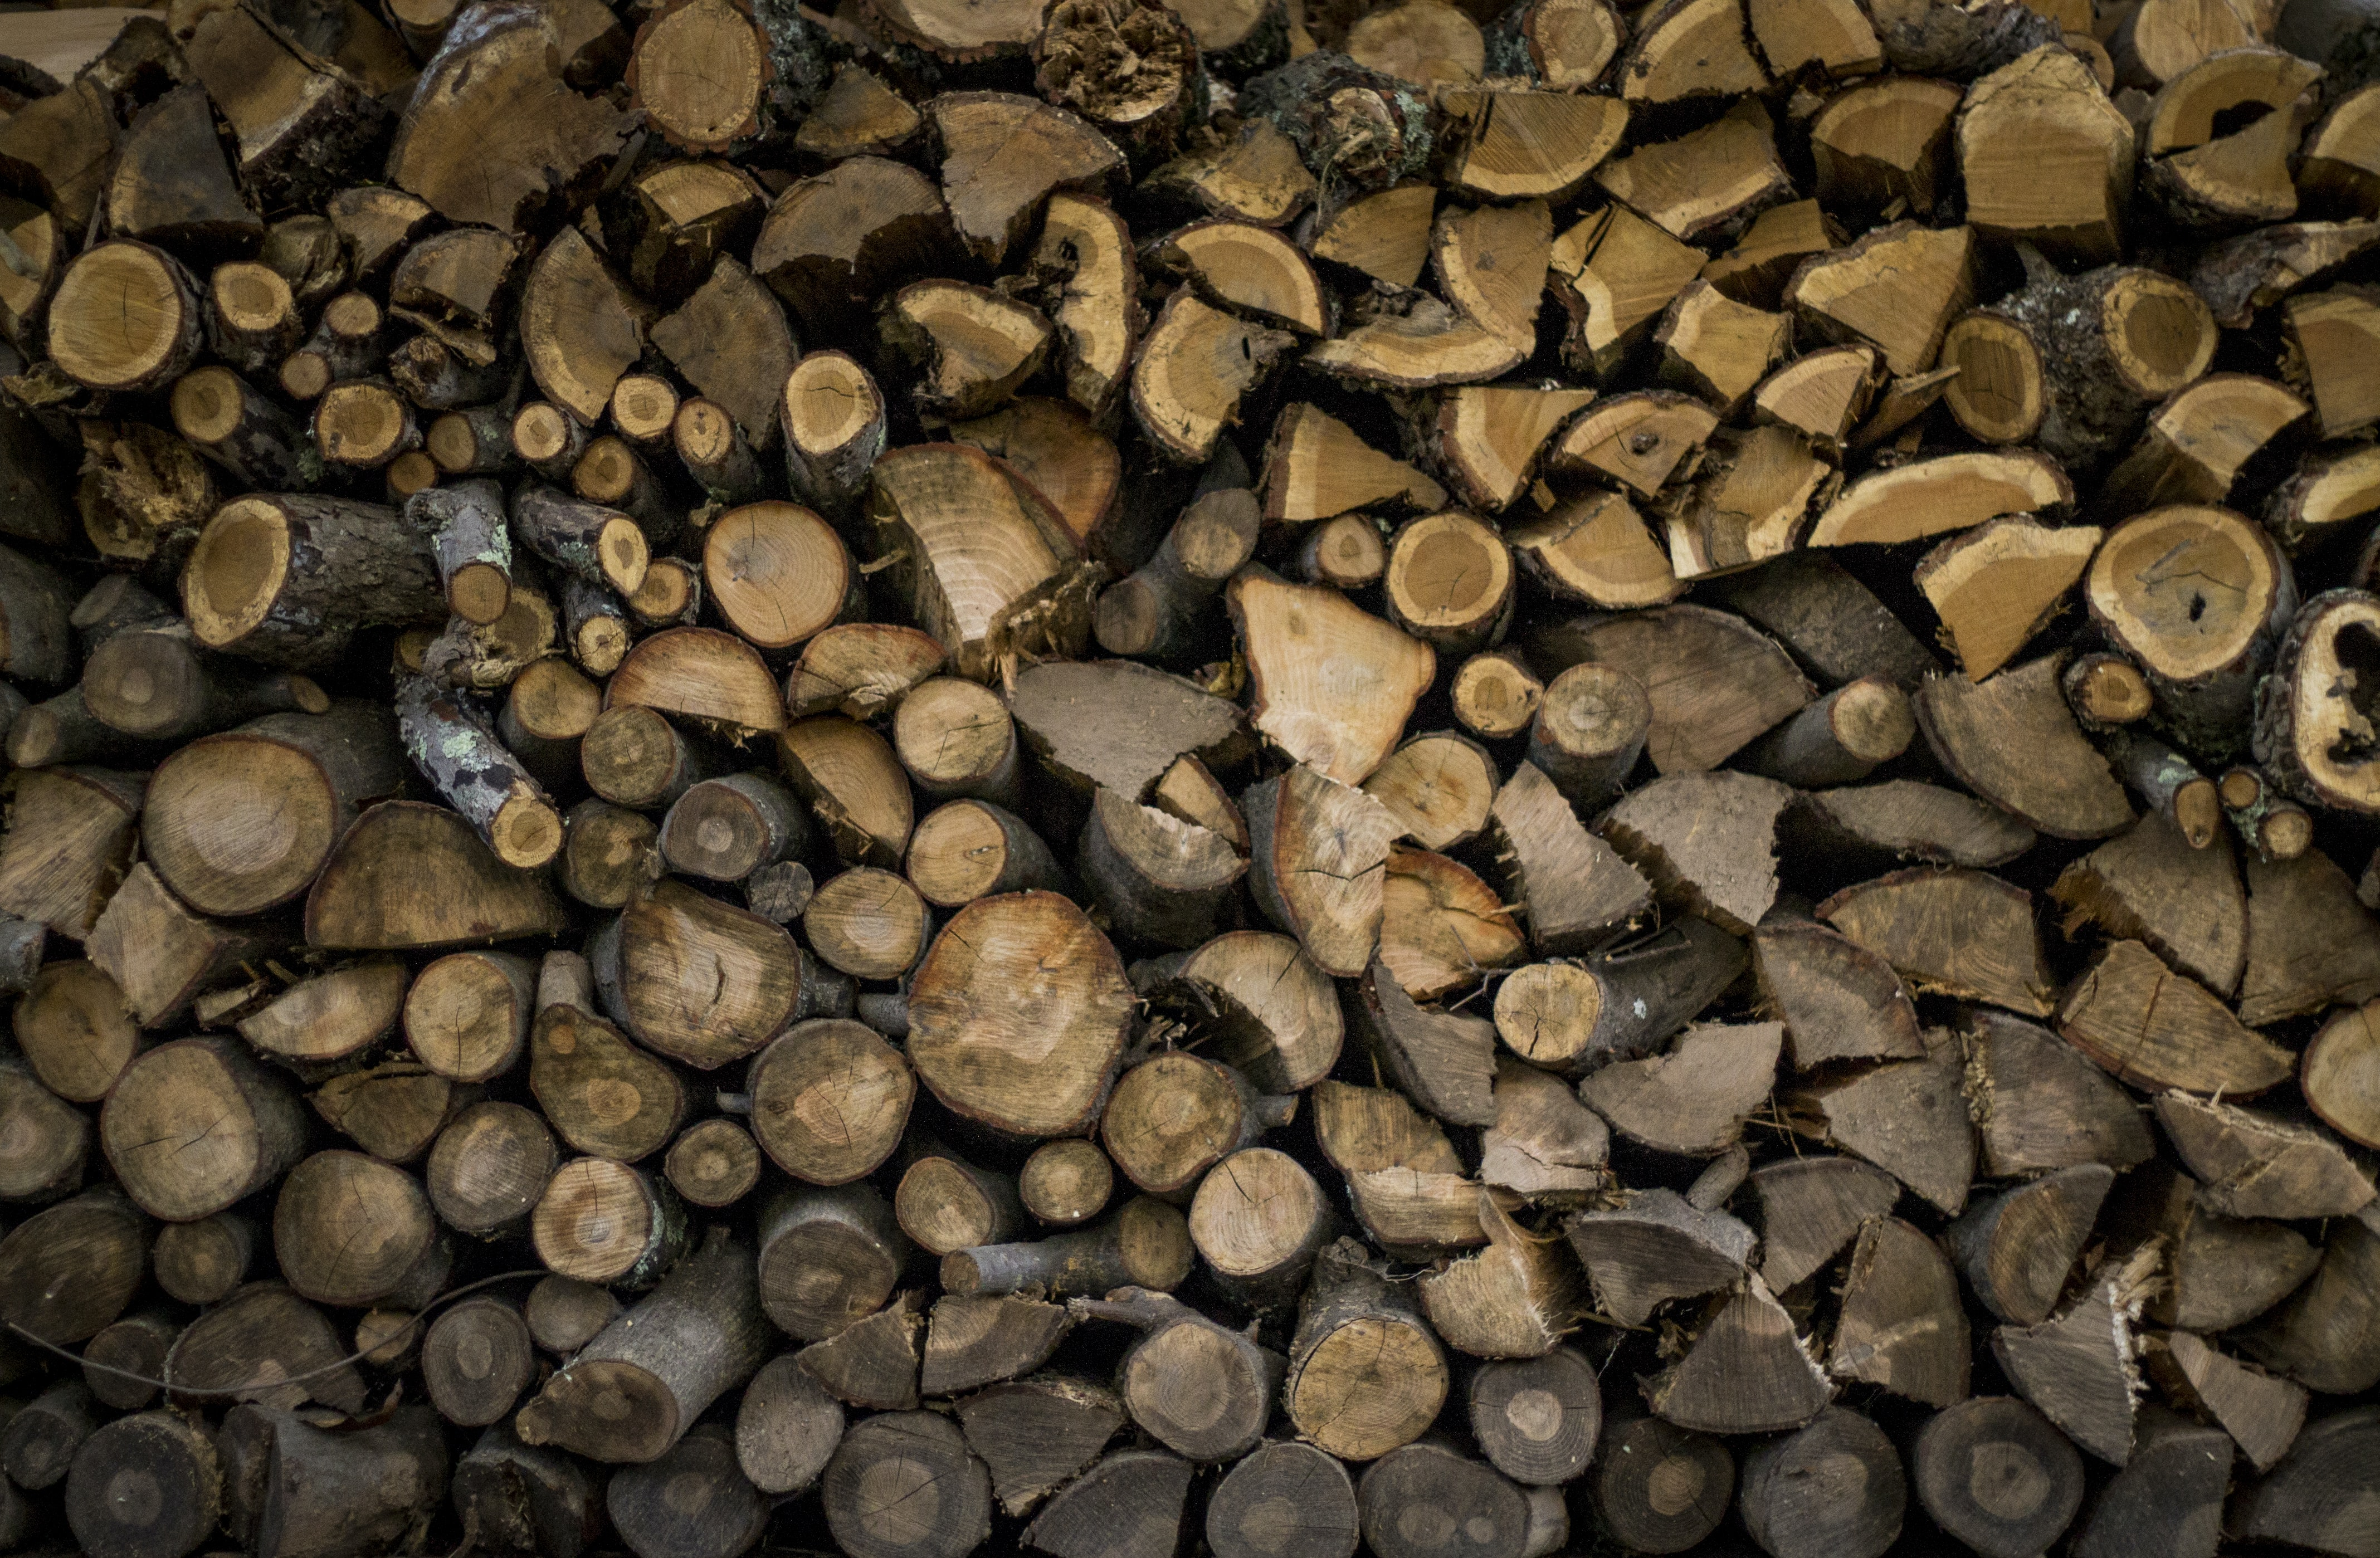 A pile of dark brown firewood in various shapes and sizes